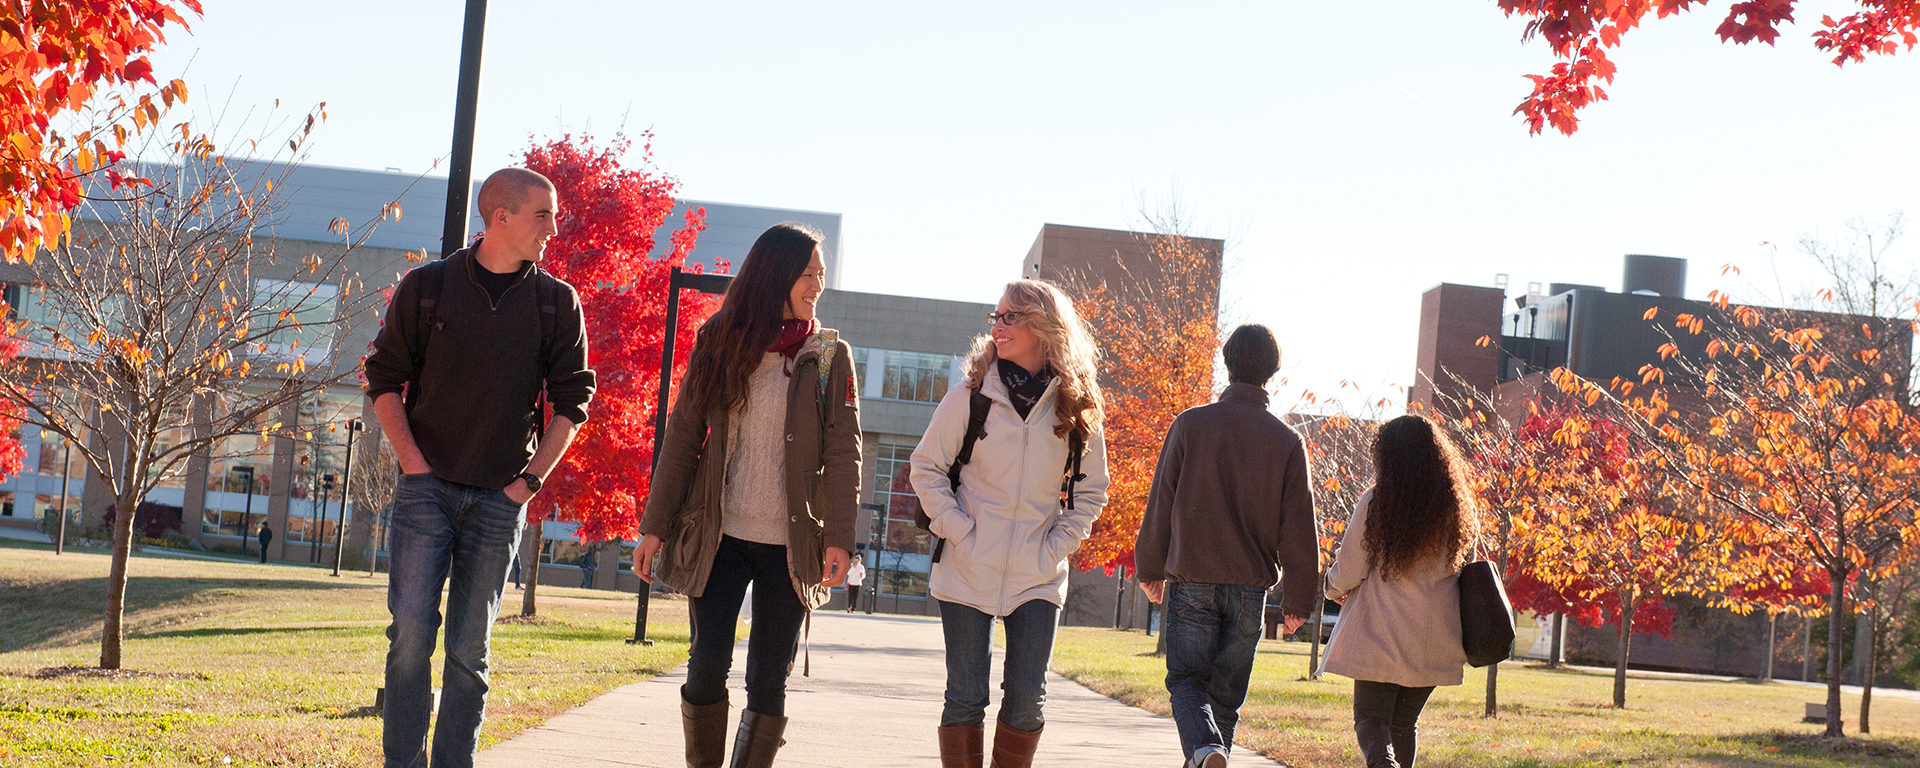 people on campus in autumn